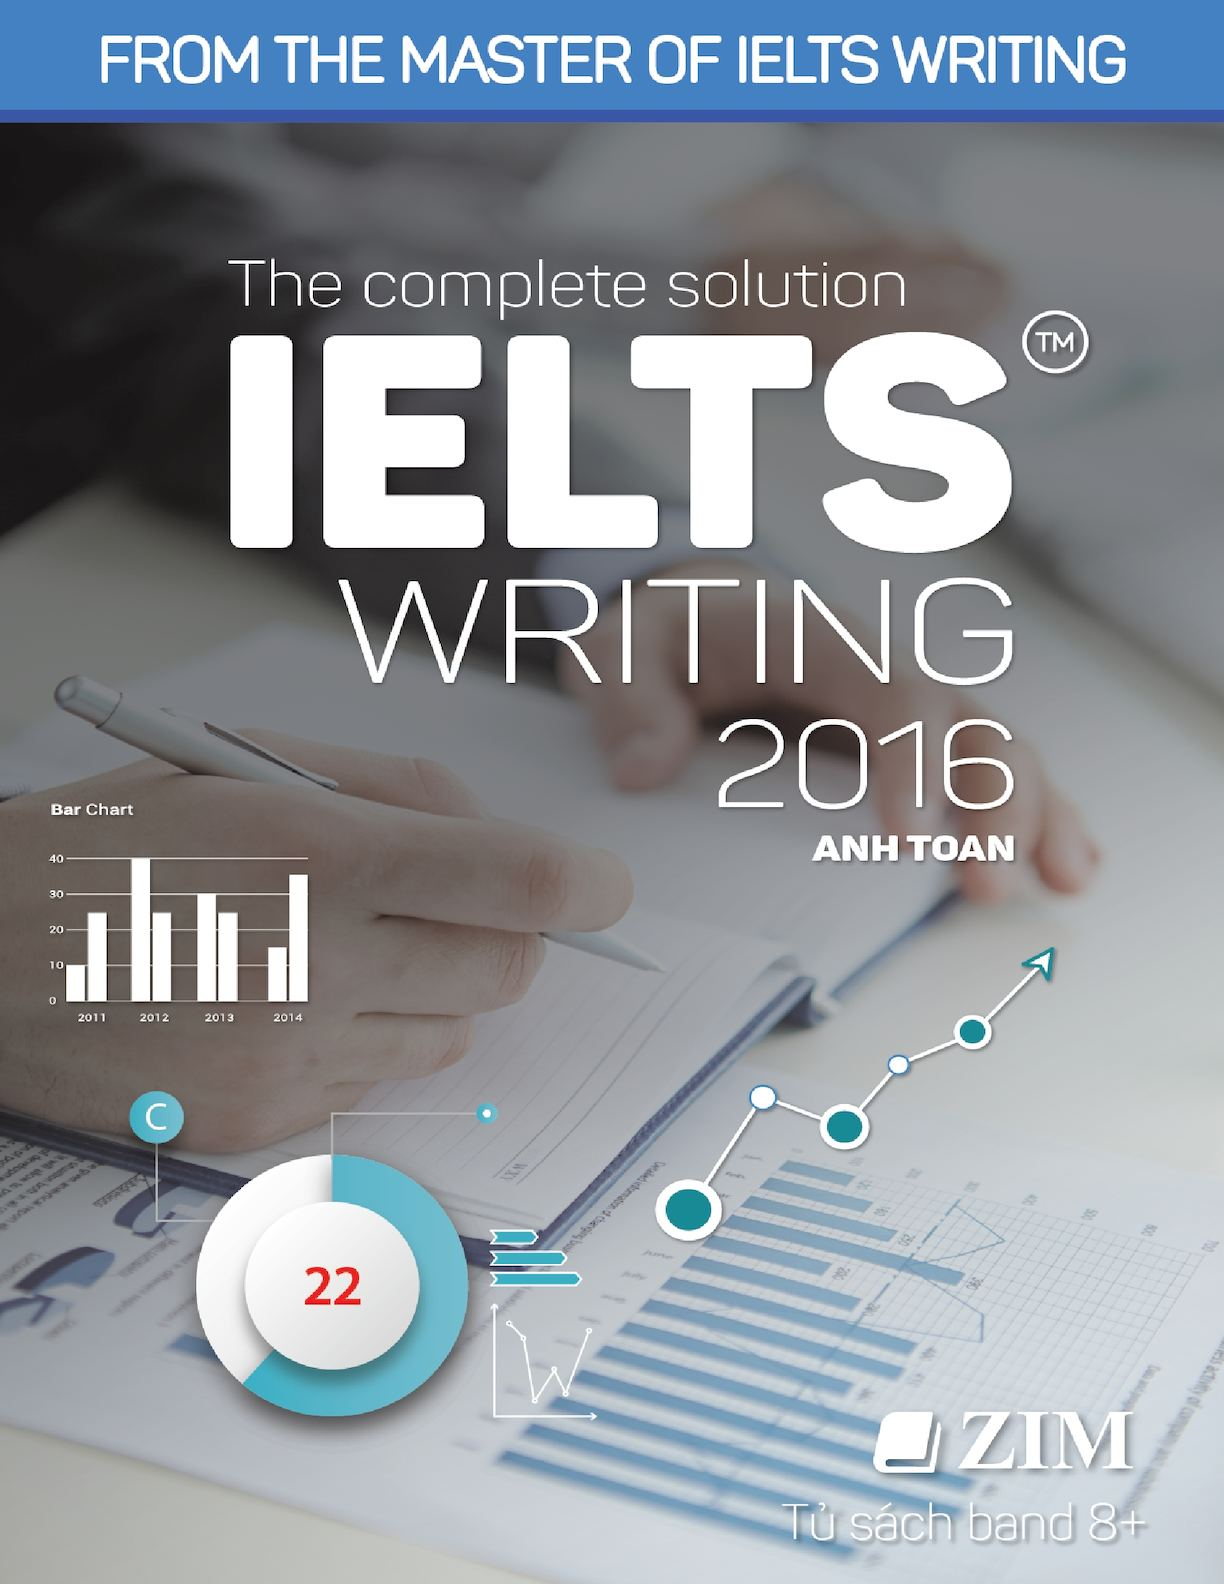 ielts essay crime in cities is out of control  ielts essay crime in cities is out of control